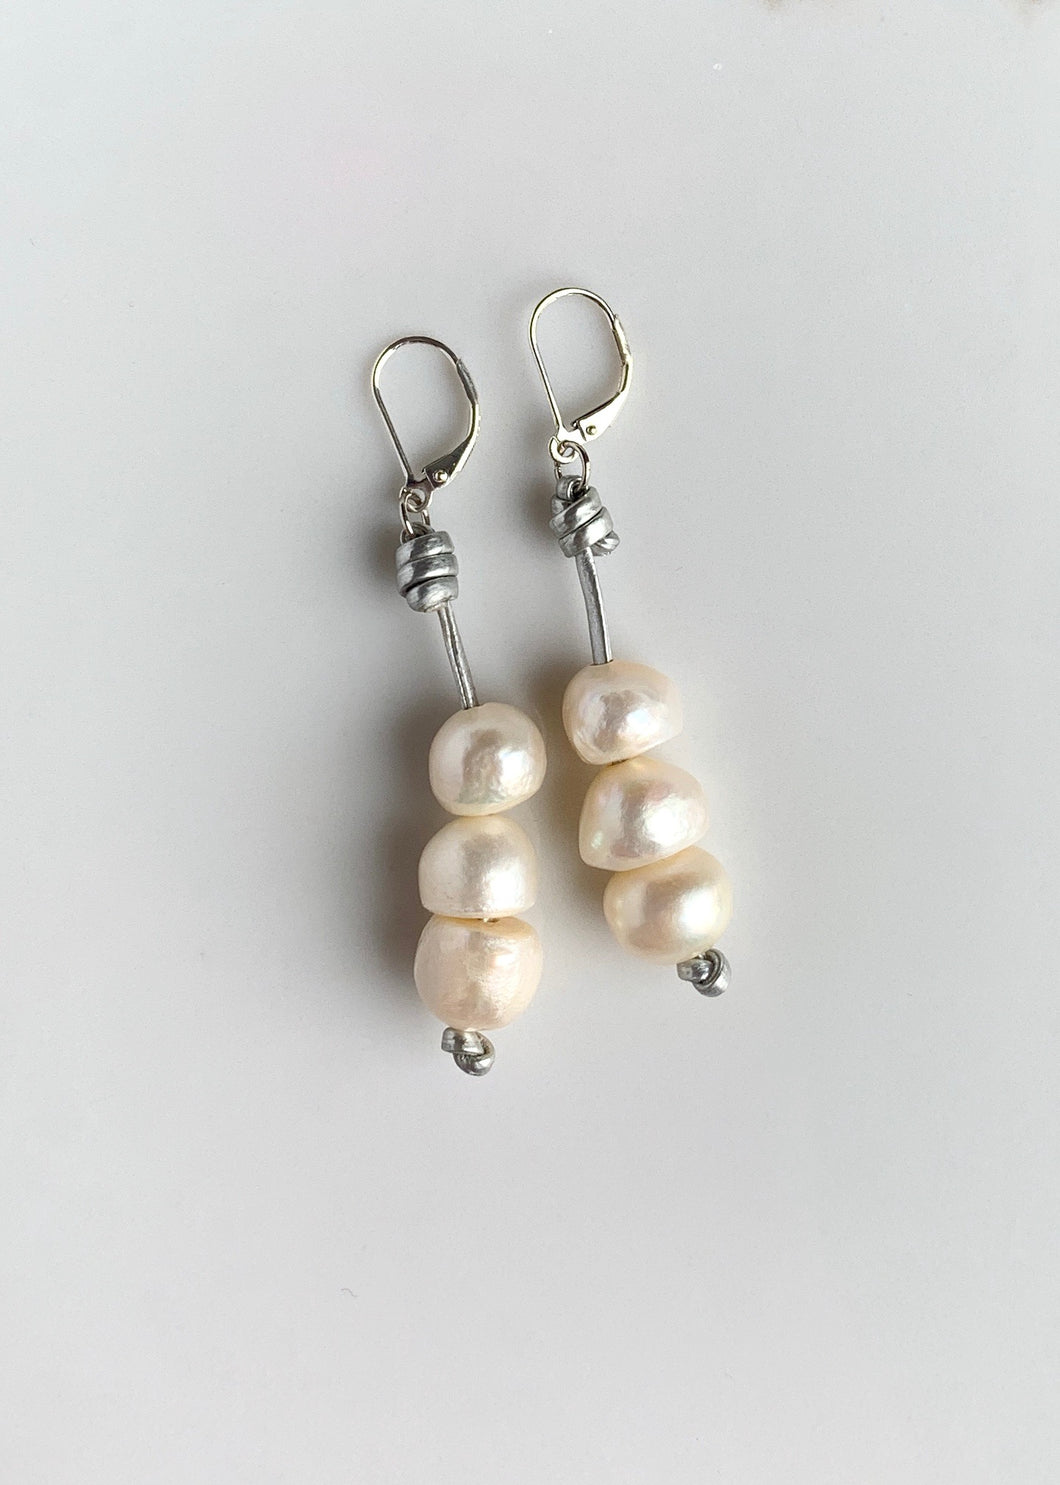 EVE EARRING - 071 - SILVER/WHITE